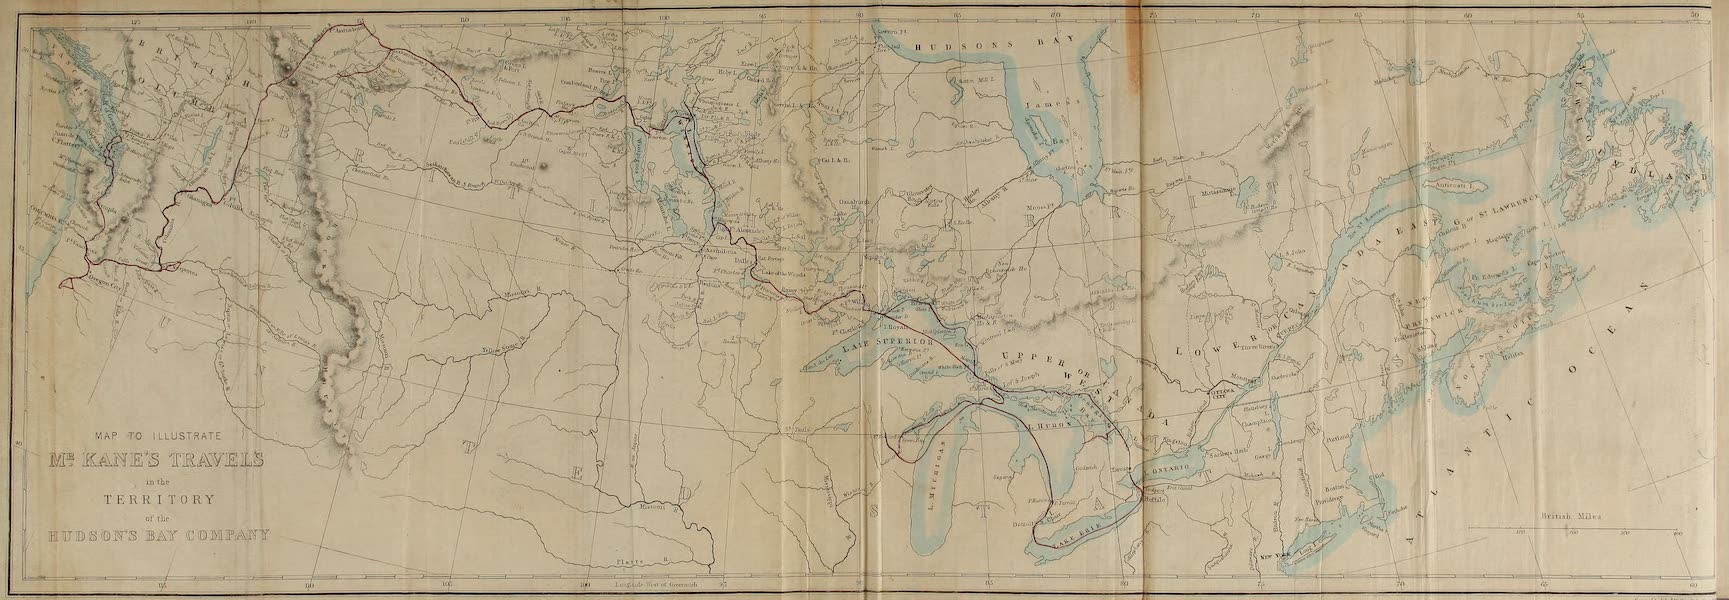 Wanderings of an Artist among the Indians of North America - Map to Illustrate Mr. Kane's Travels in the Territory of the Hudson's Bay Company (1859)